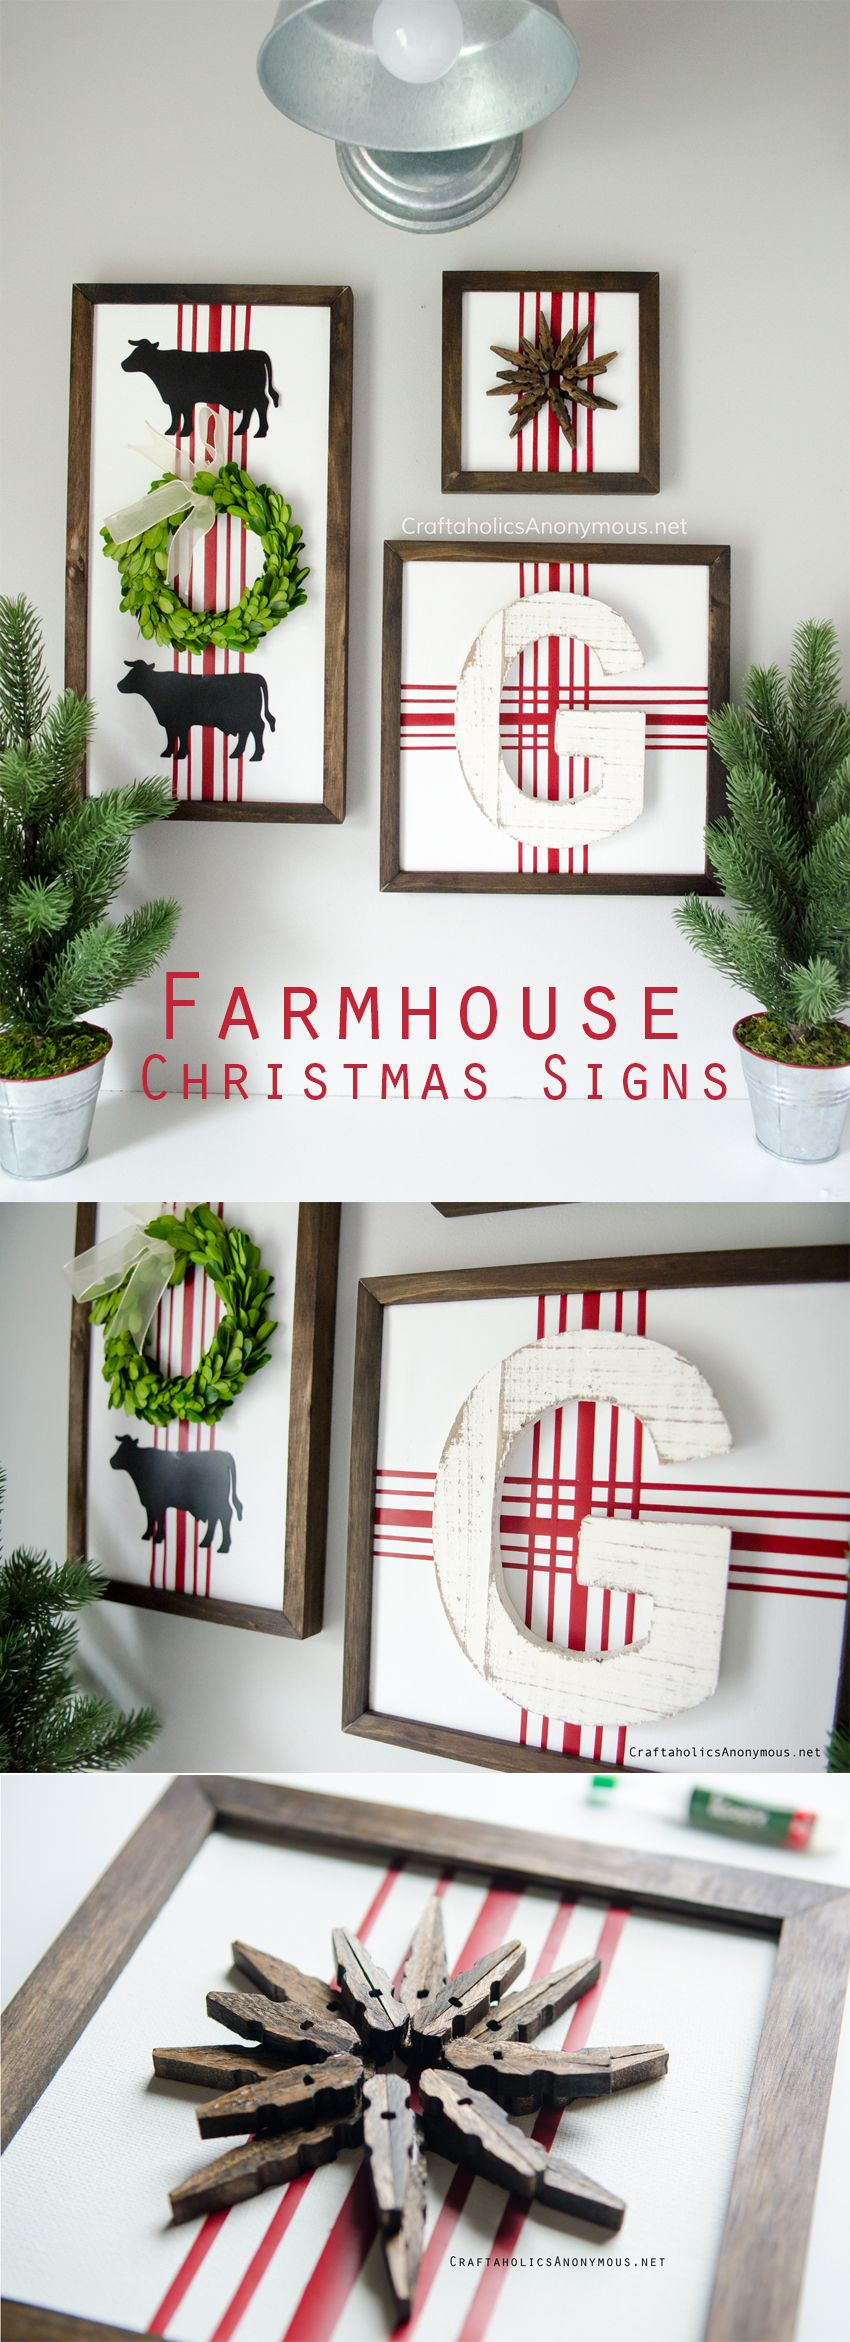 DIY Farmhouse Christmas Signs | Pinterest | Wreaths, Seasonal decor ...